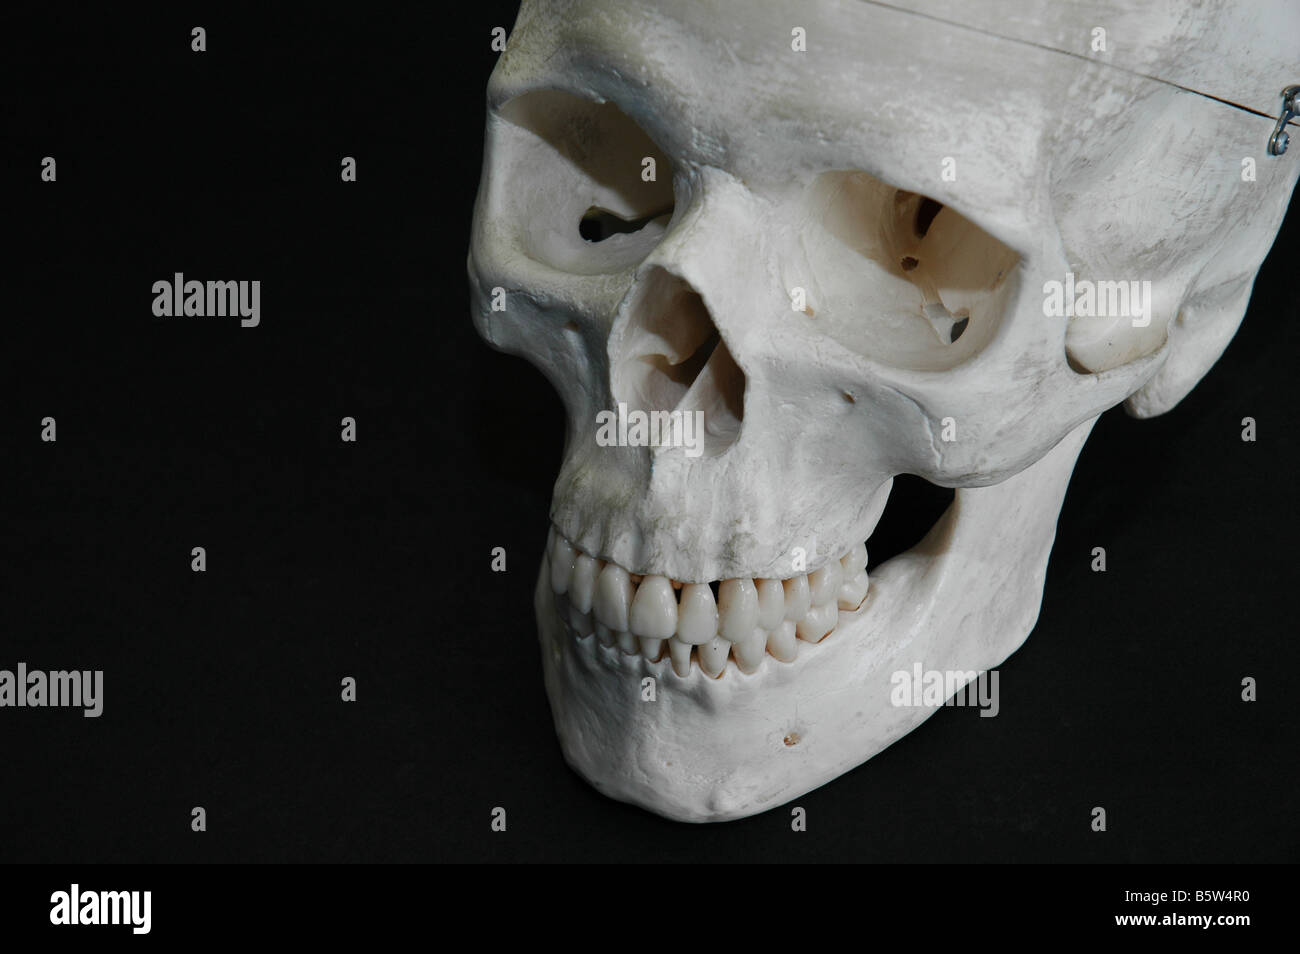 Human skull bone used by forensic medical students at university - Stock Image